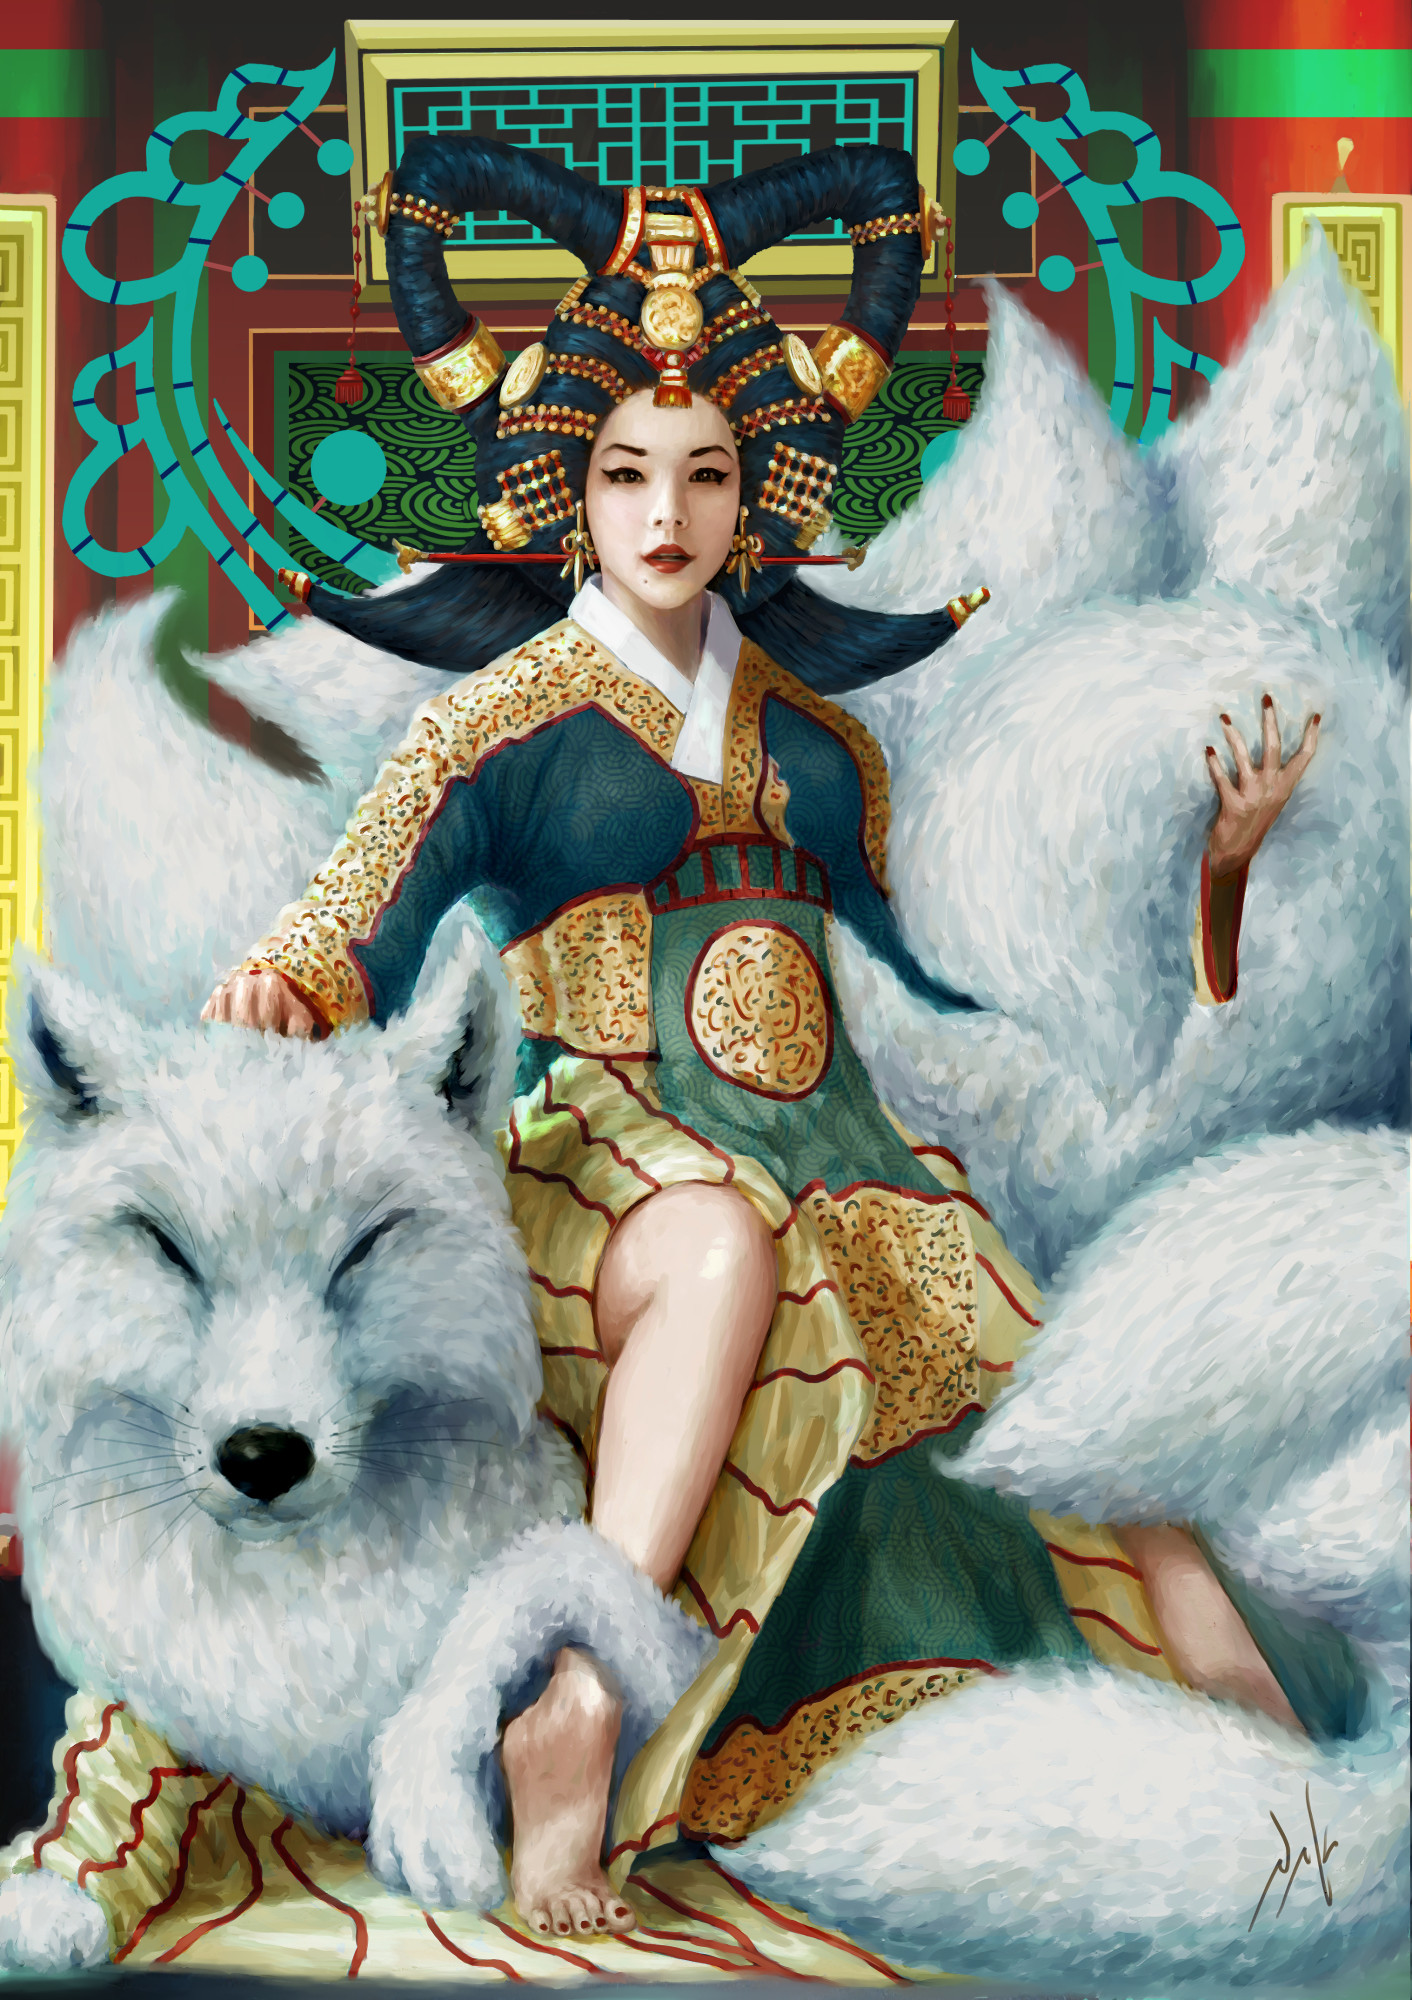 Naka isurita seven tail fox empress